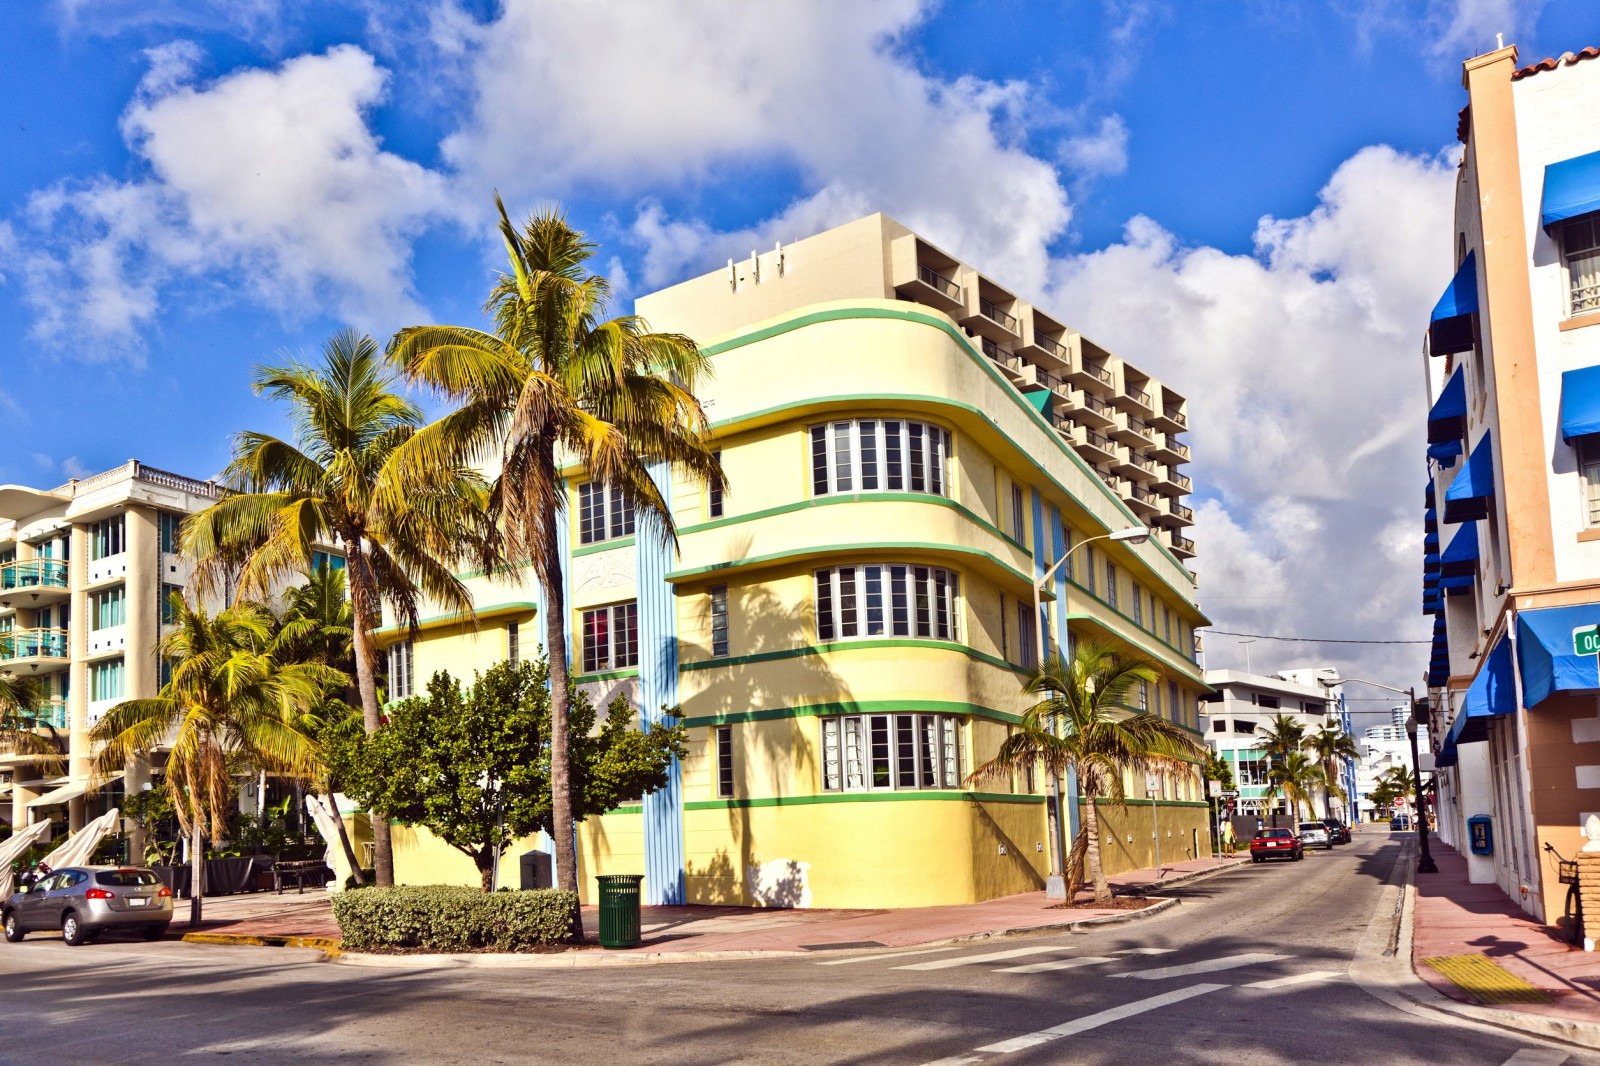 South Miami Heart Specialists Mail: Delectable Design Defined: Art Deco